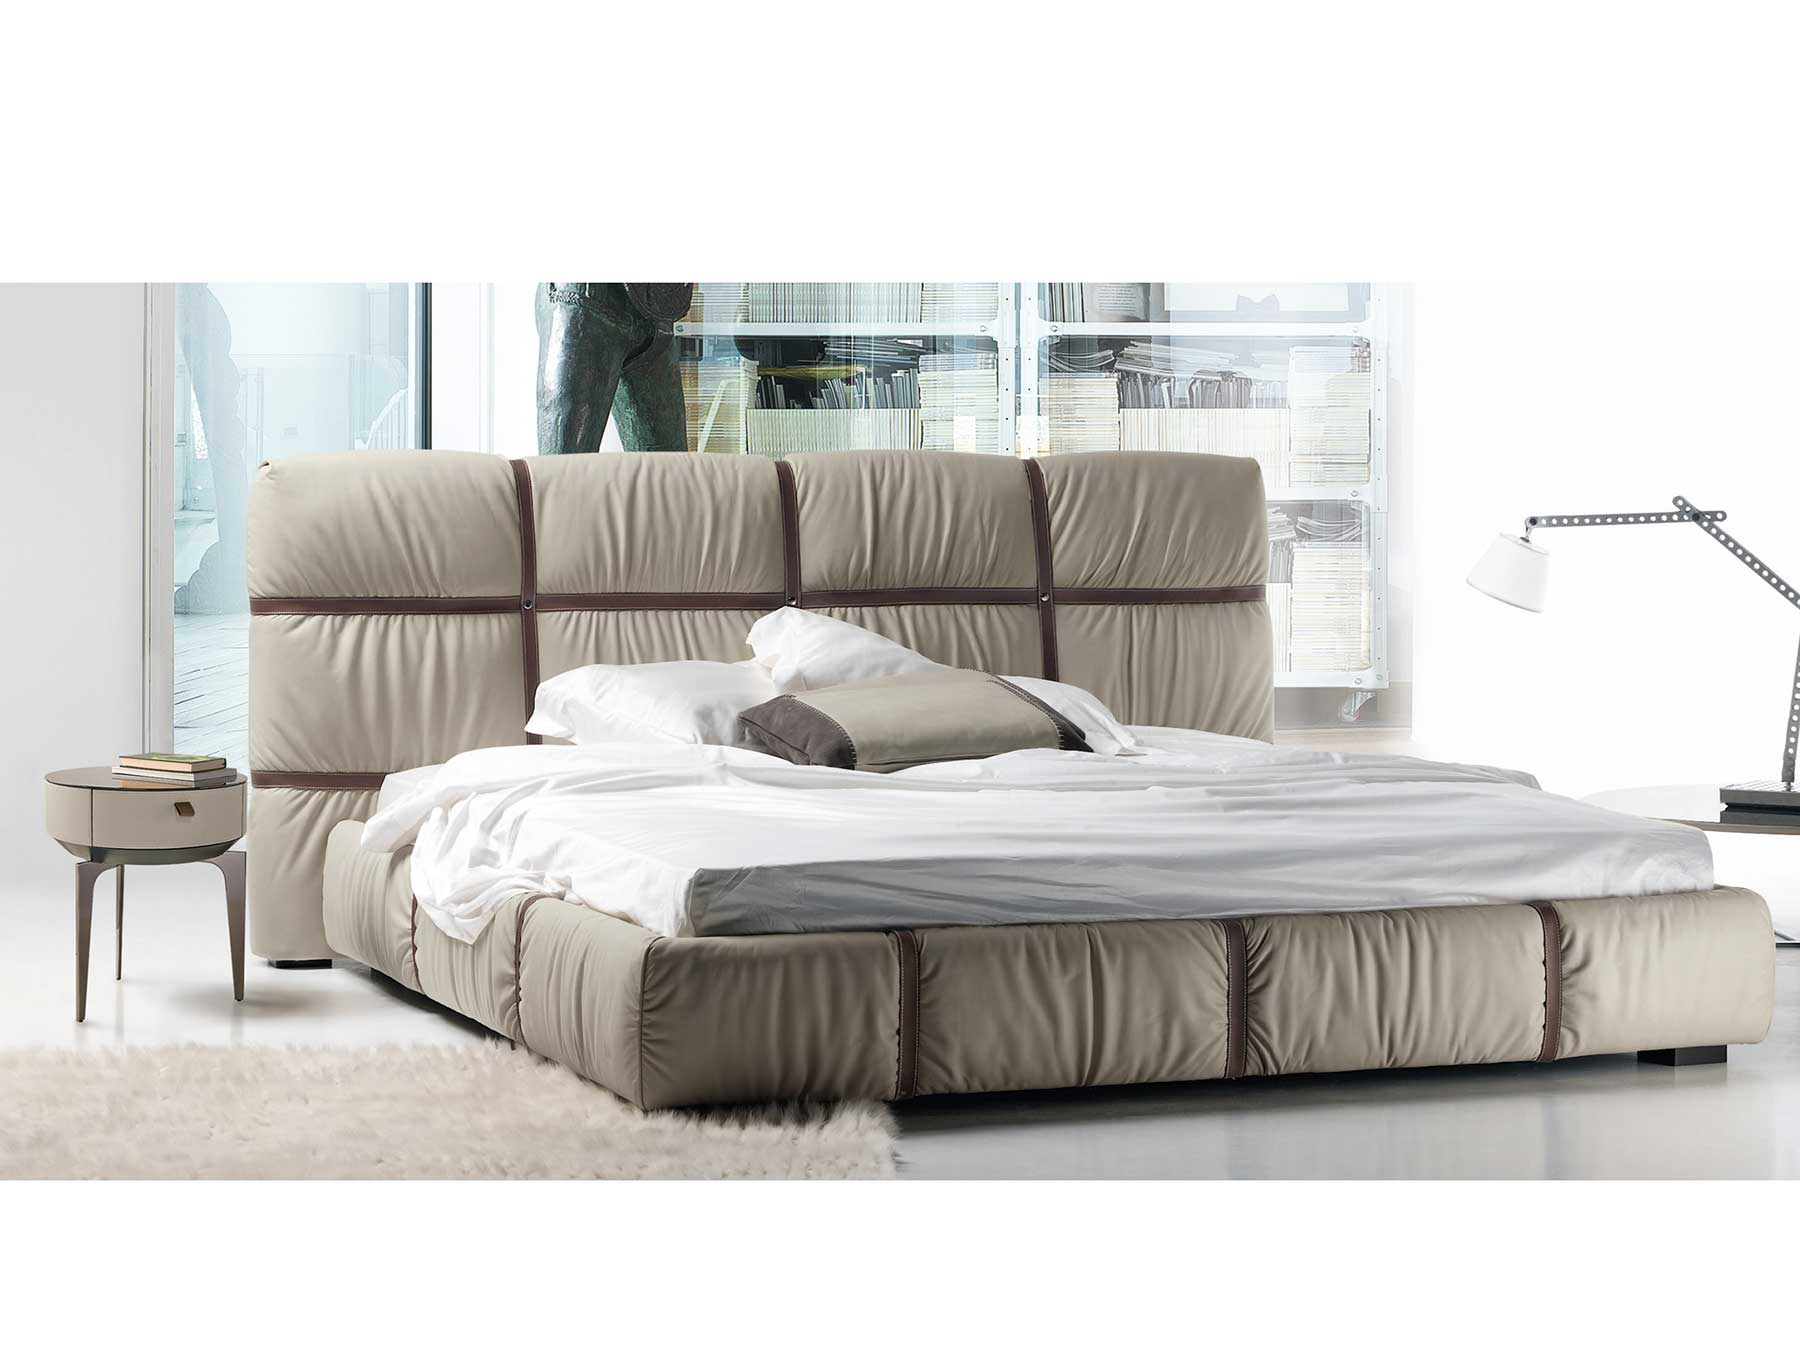 Welcoming and warm shapes and volumes. Crossover leather bed with bends will furnish the bedroom of your luxurious home. Online shopping. Free home delivery